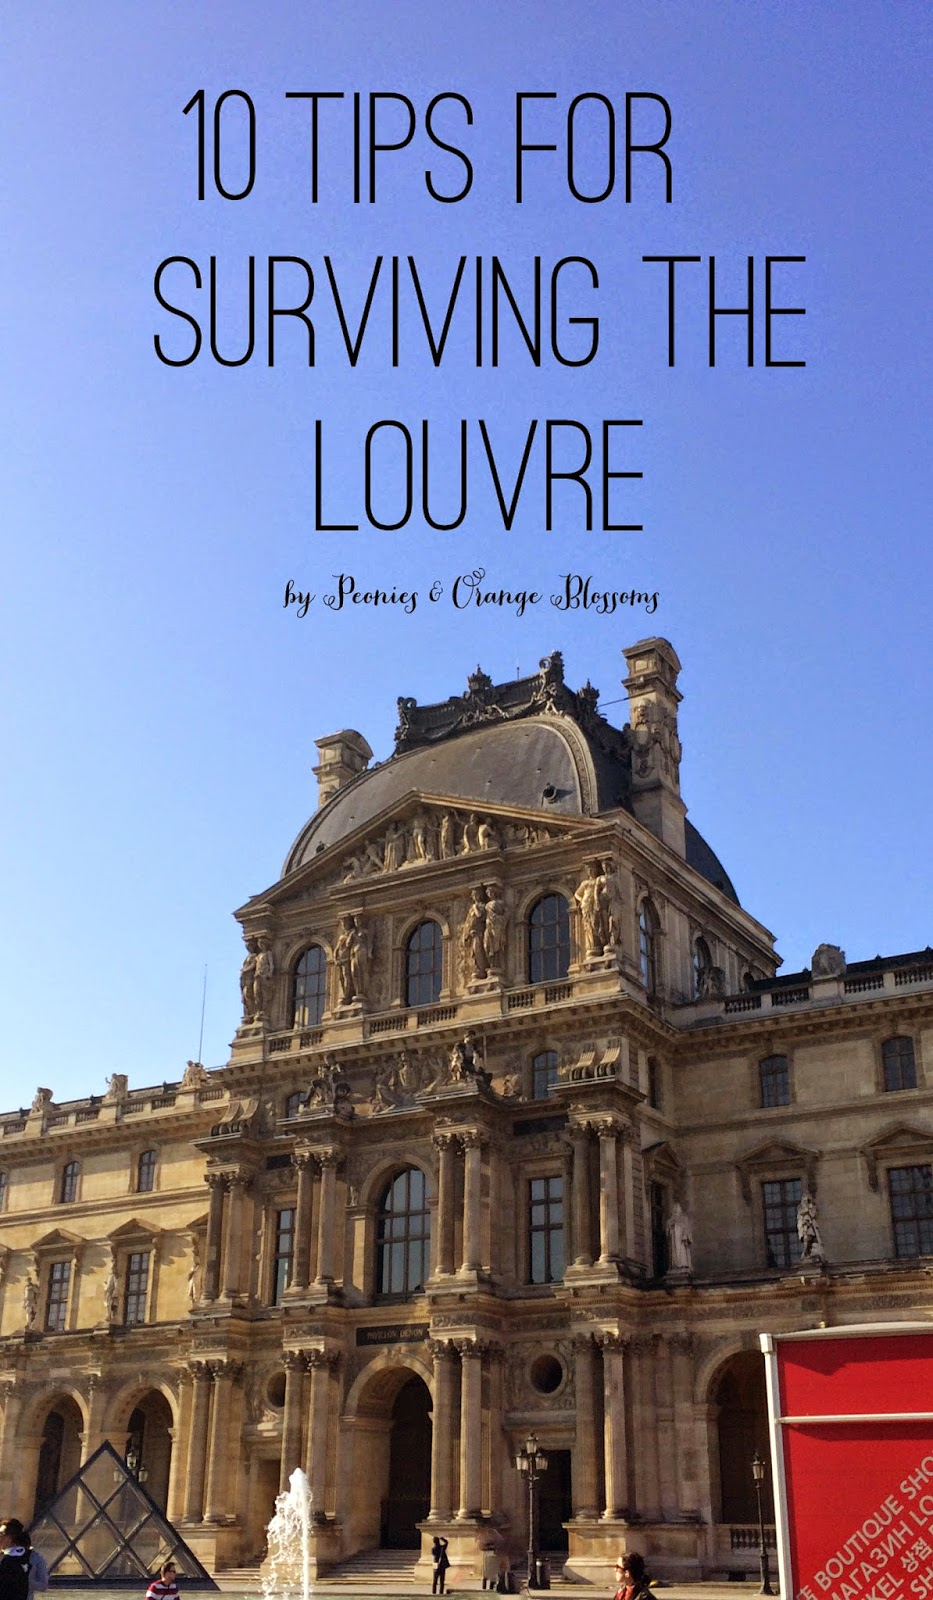 10 tips for surviving the Louvre